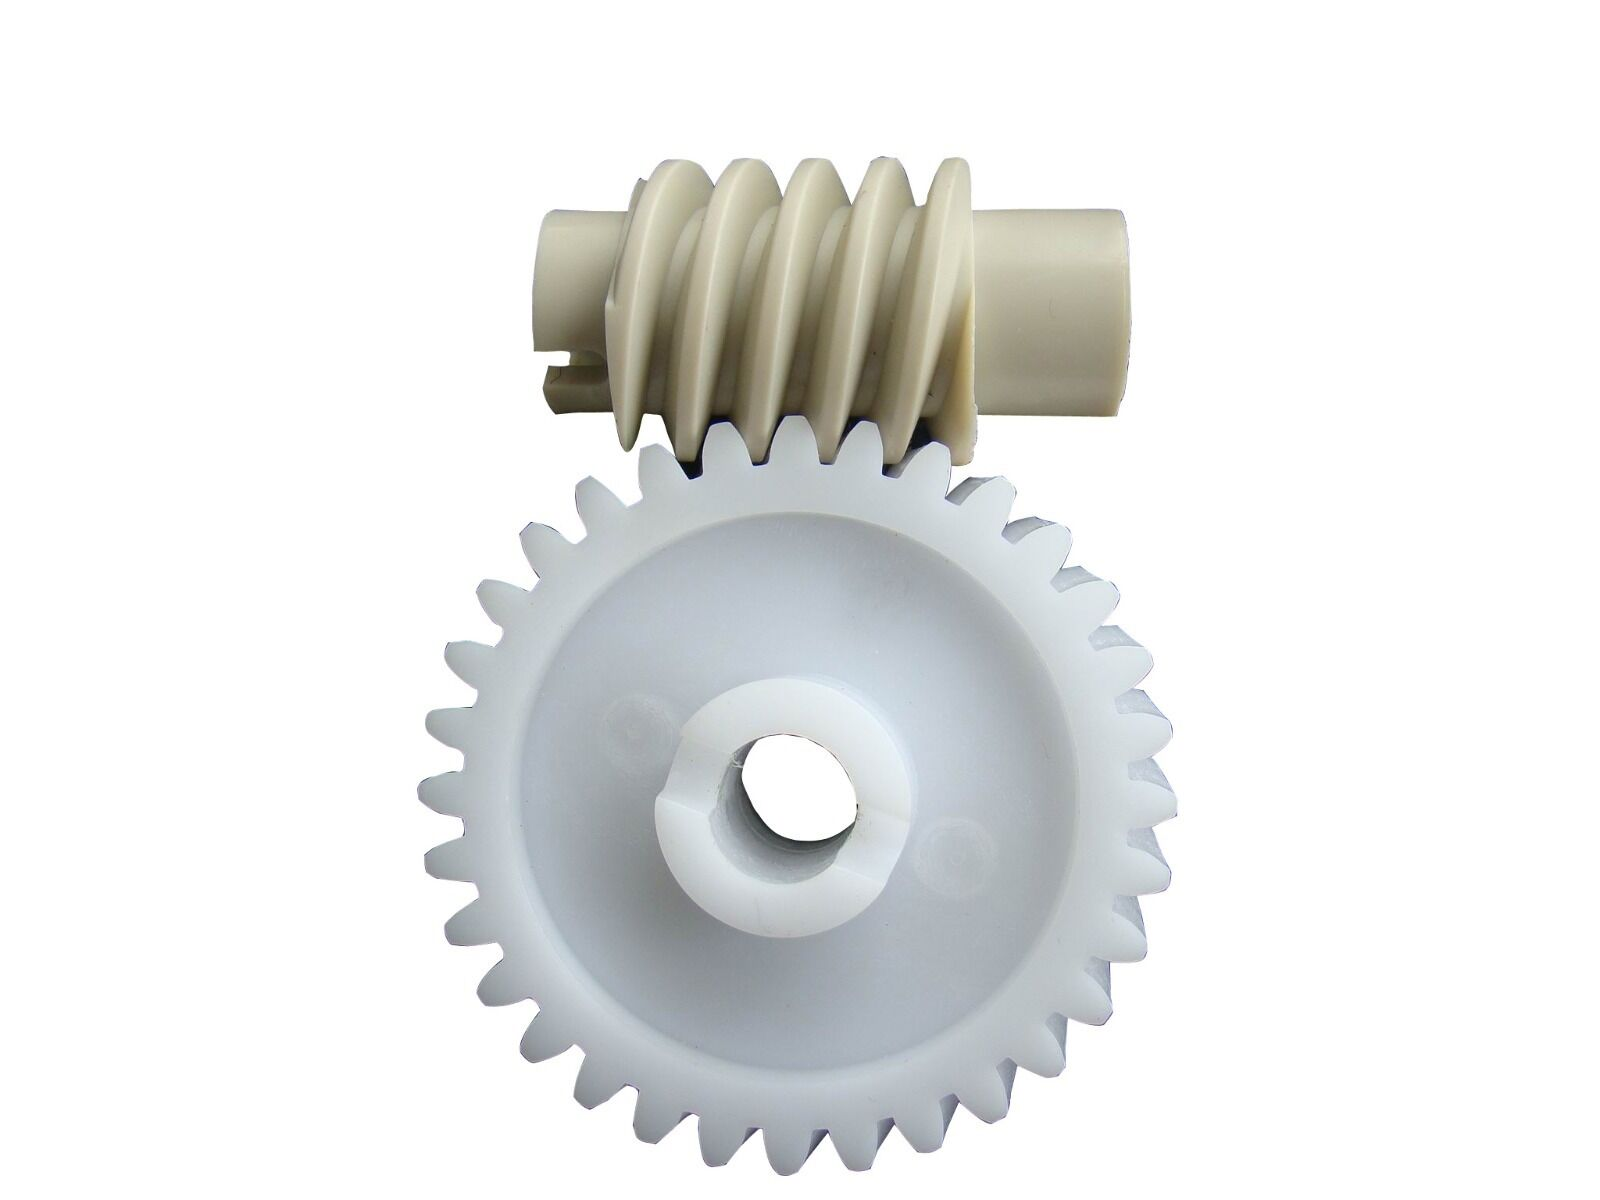 41a2817 41c4220a Garage Door Opener Drive Worm Gear Kit For Sears